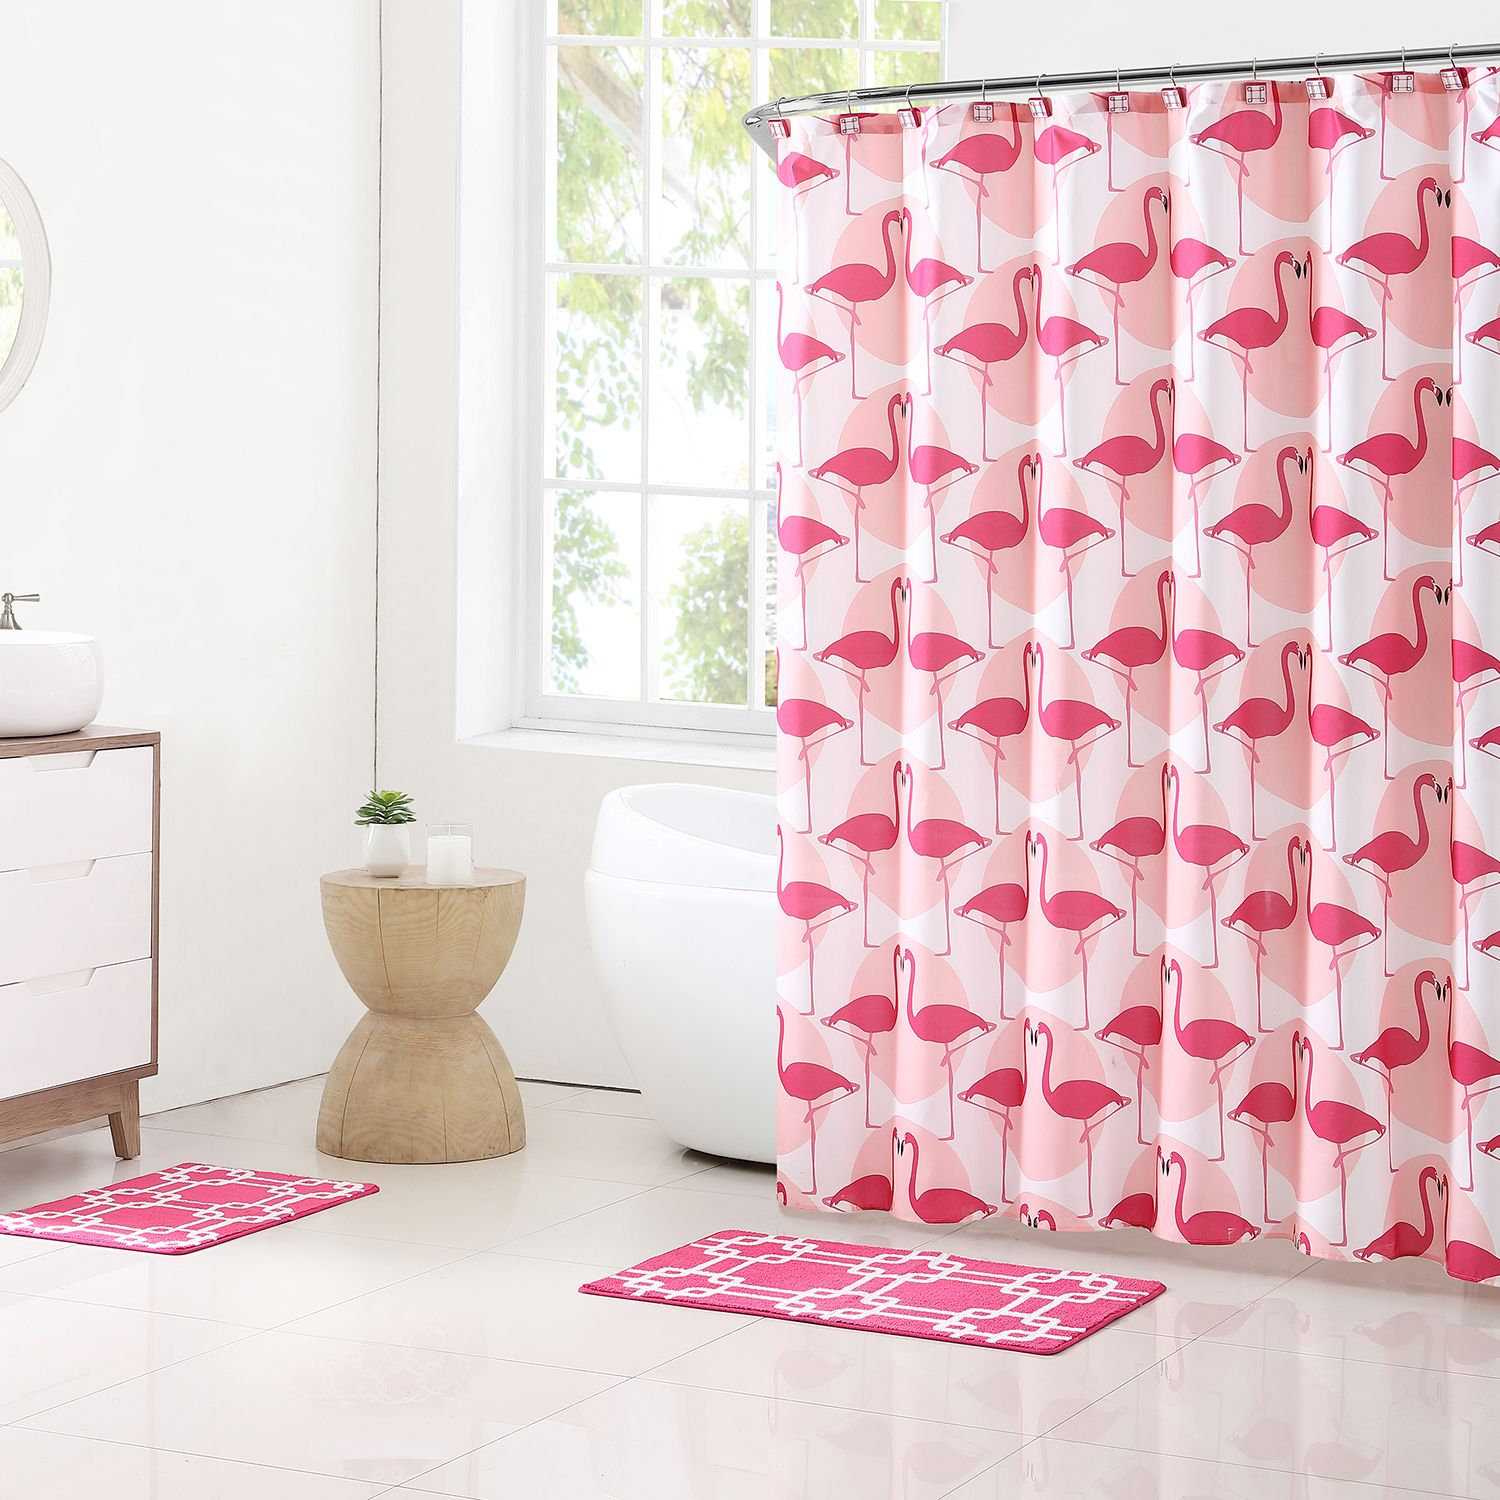 Clairebella 15 Piece Flamingo Bathroom Set